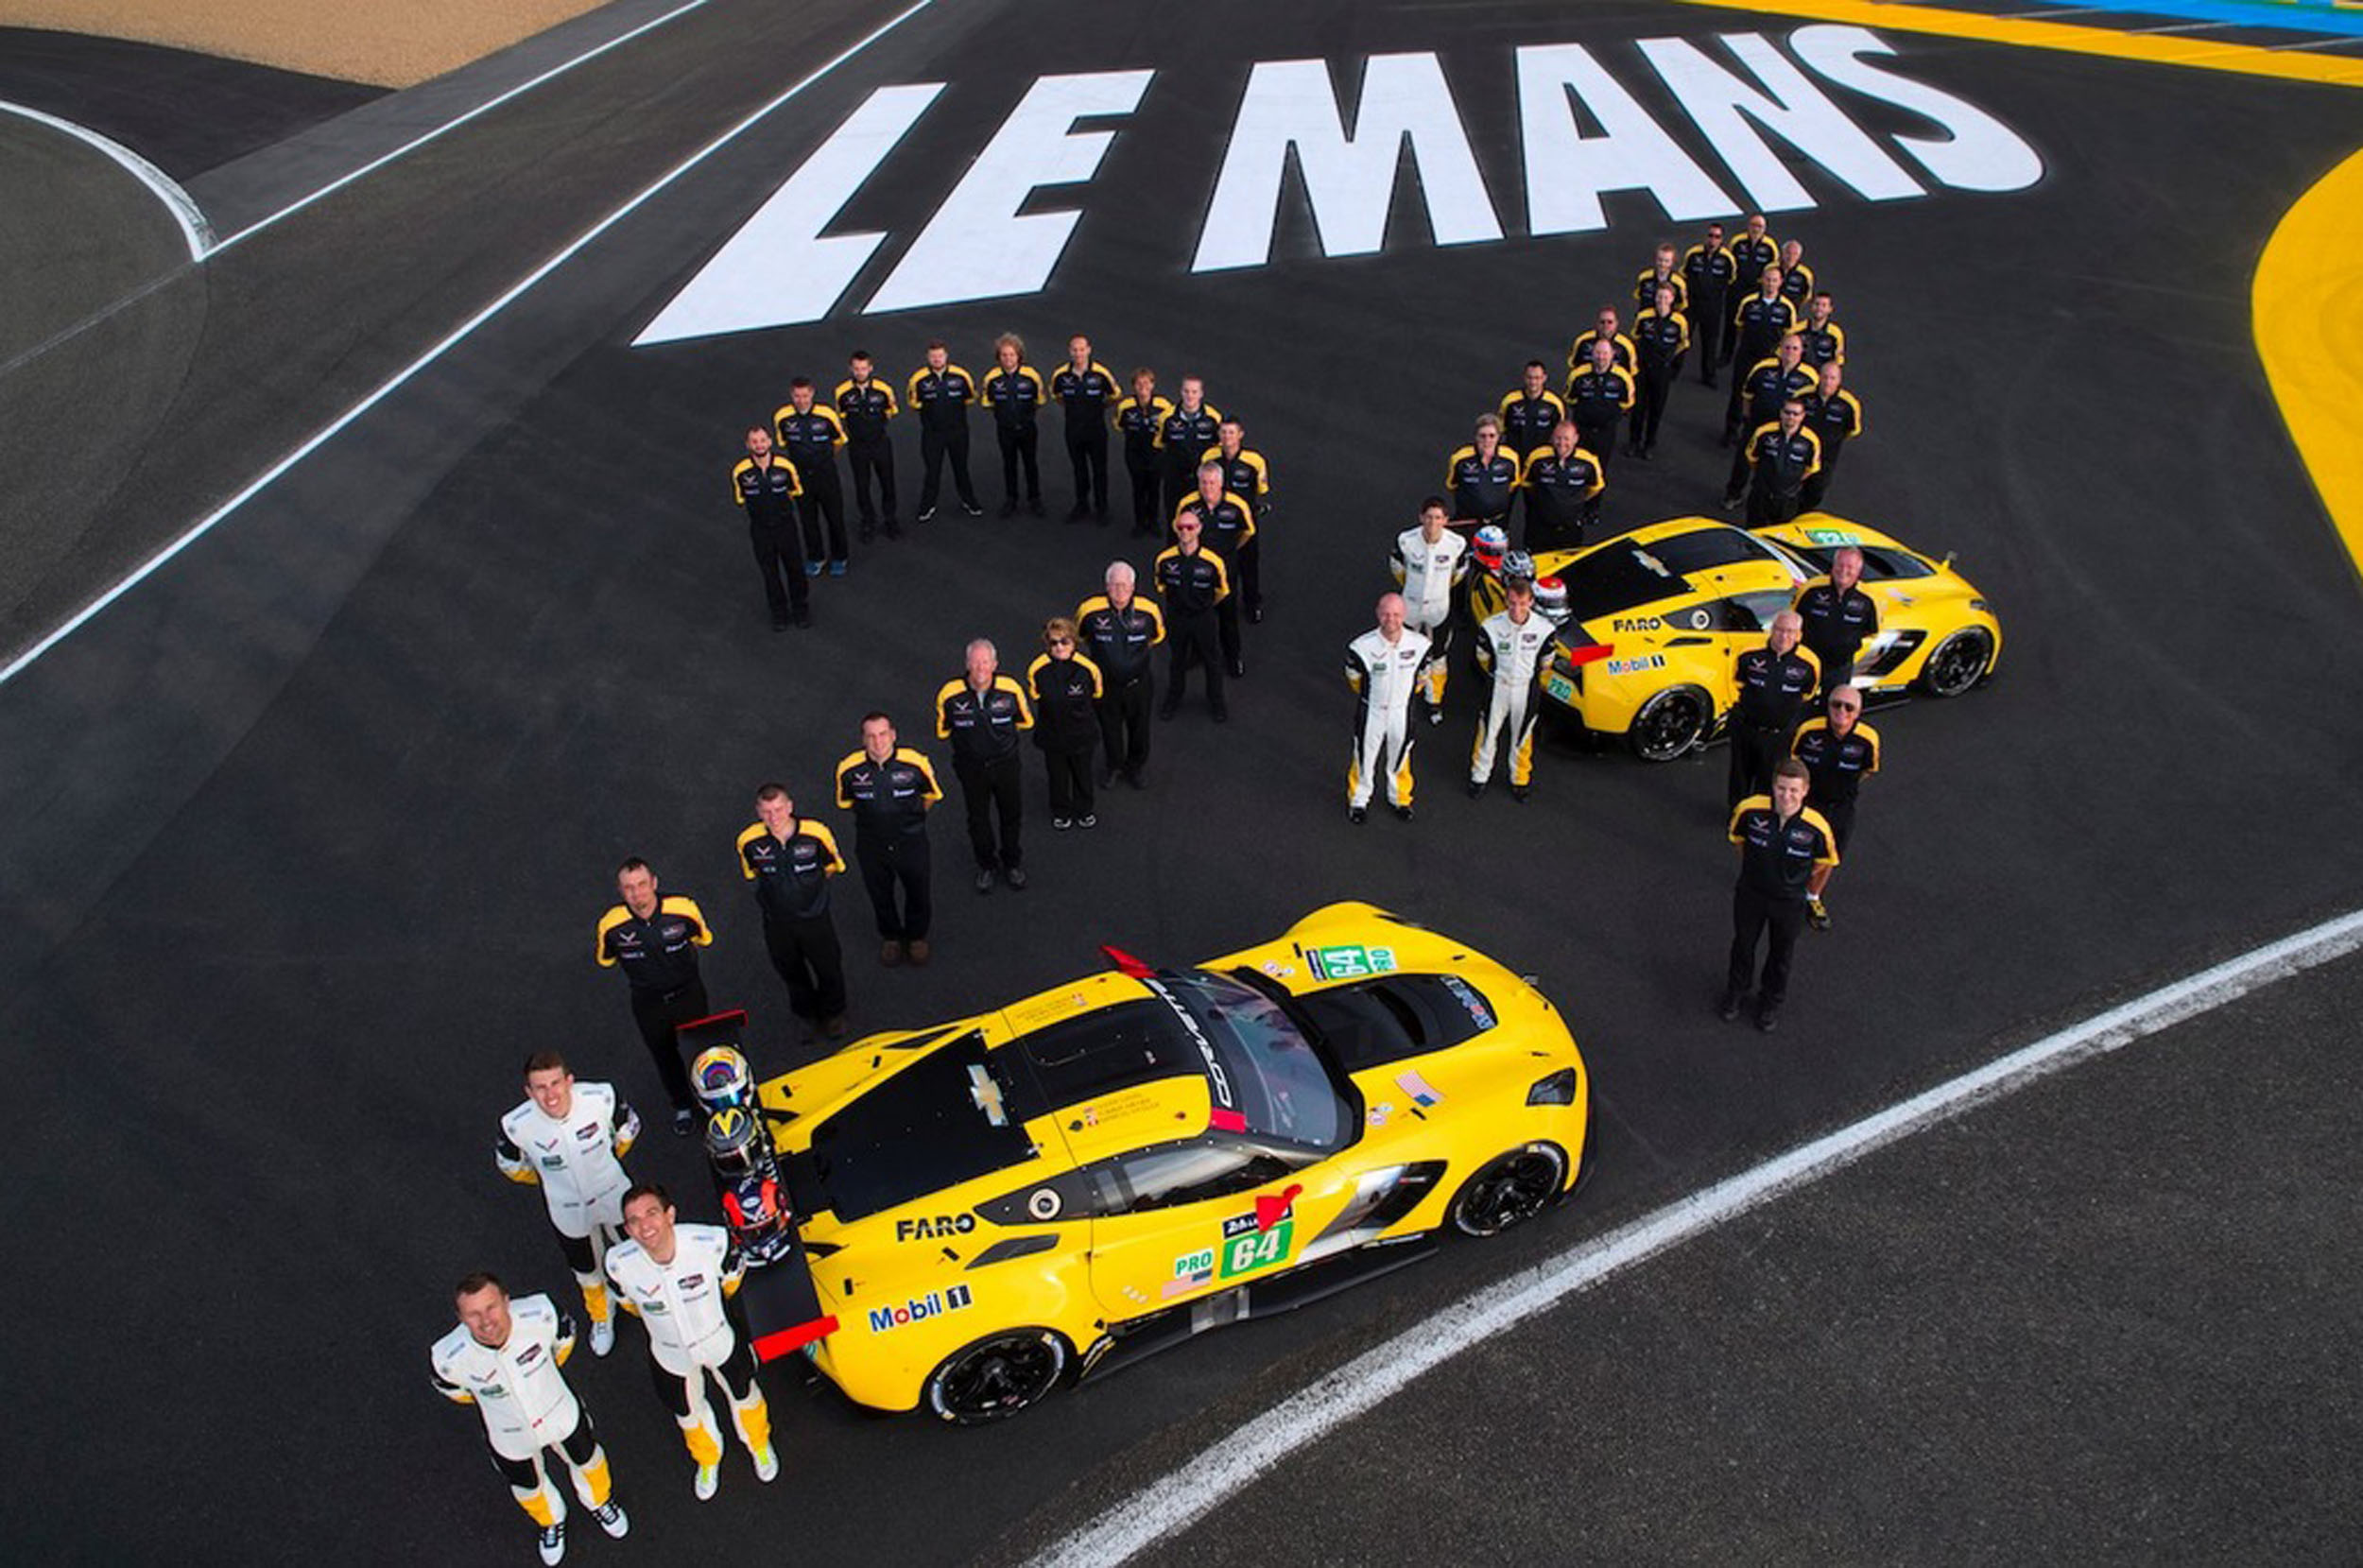 Corvette Racing 24 Hours of Le Mans